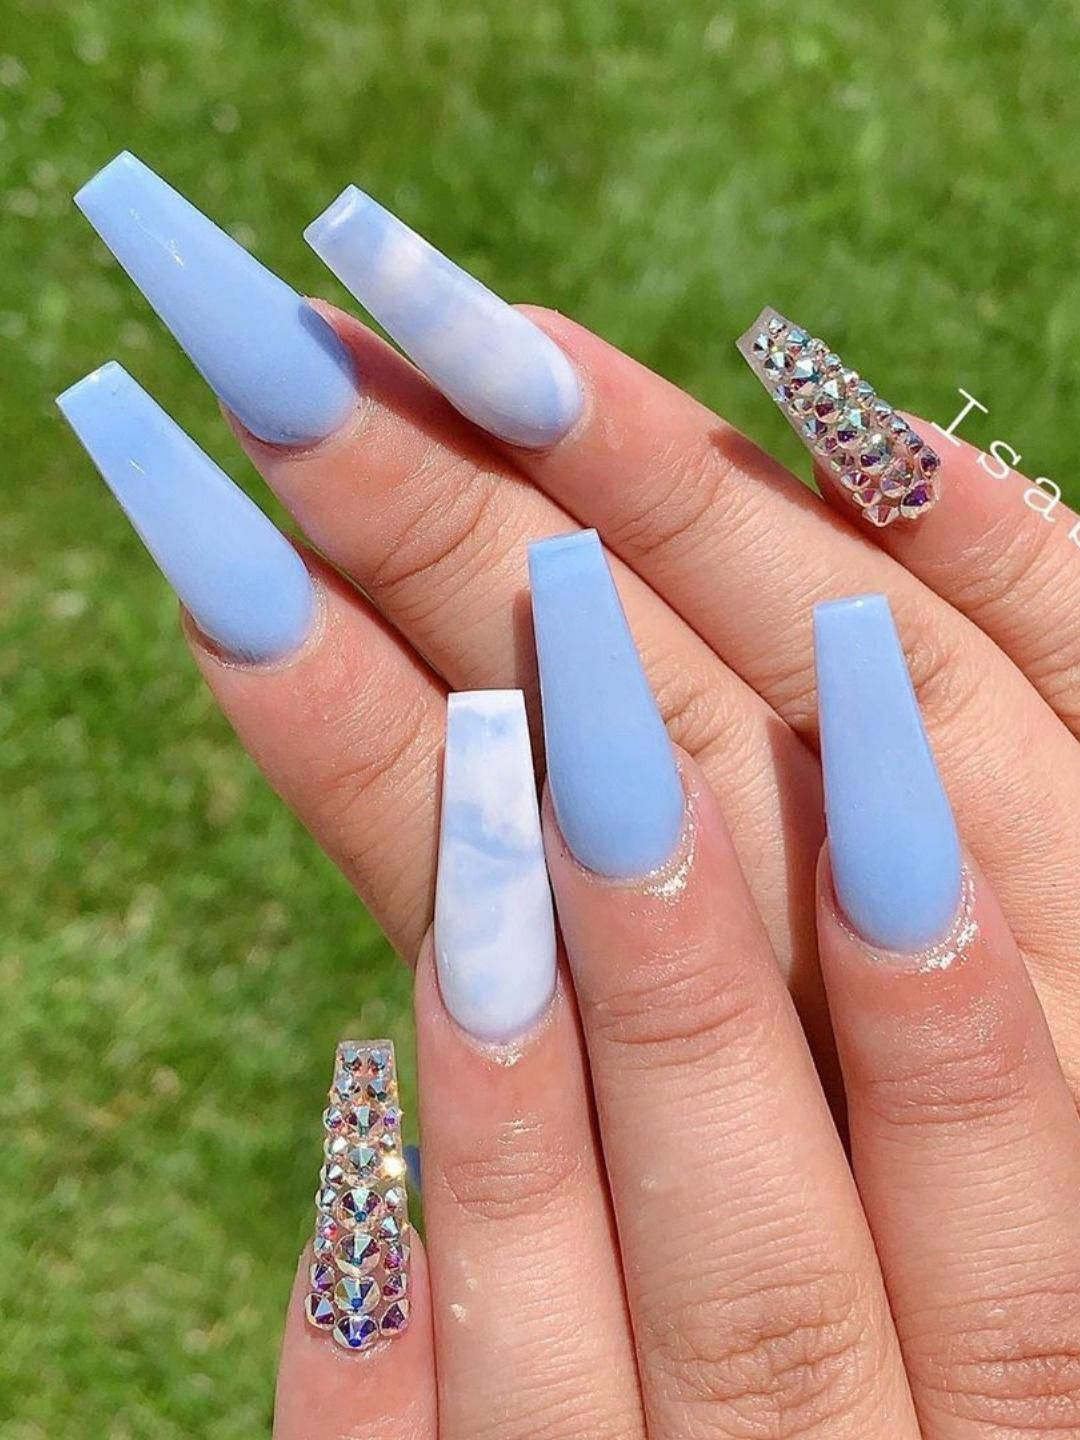 Beautiful Nails Set Consists Of Light Blue Coffin Nails Blue White Marble Coffin Nail And Cryst In 2020 Baby Blue Acrylic Nails Blue Acrylic Nails Blue Ombre Nails